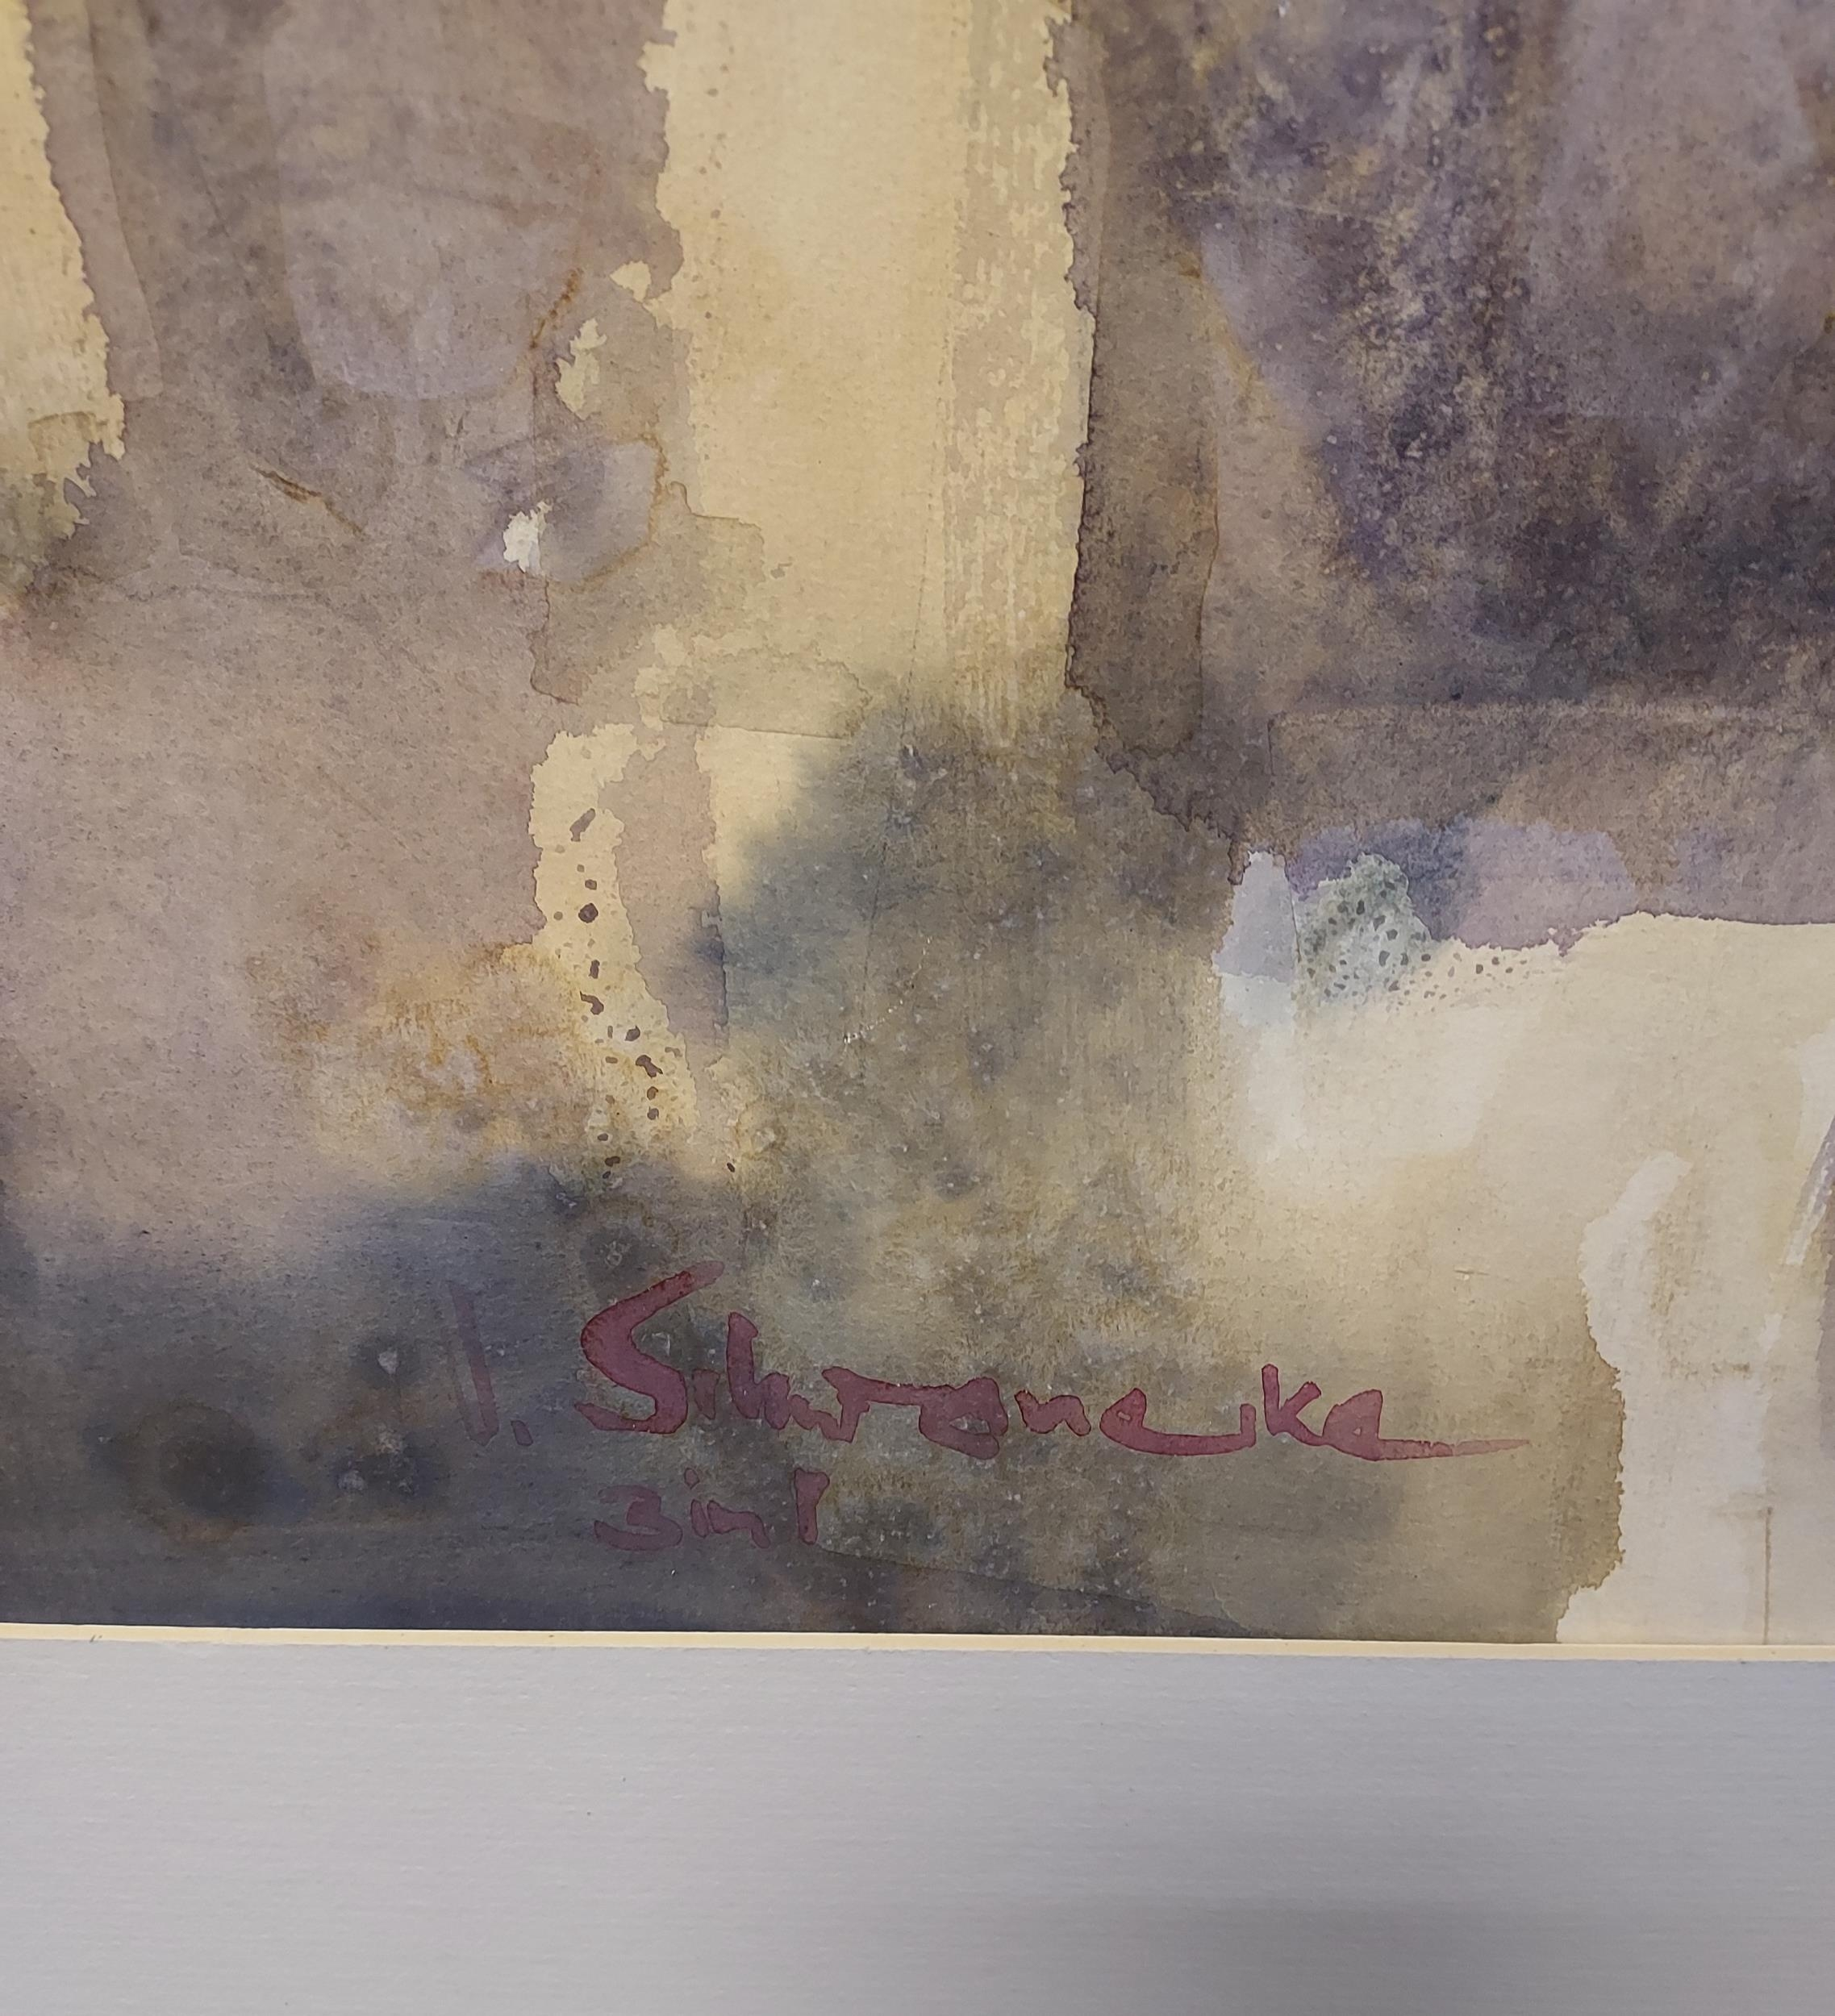 Ulrich Schwanecke [1932-2006] Original watercolour titled 'Augrabie Gorge [3 in 1]' exhibited in - Image 2 of 4